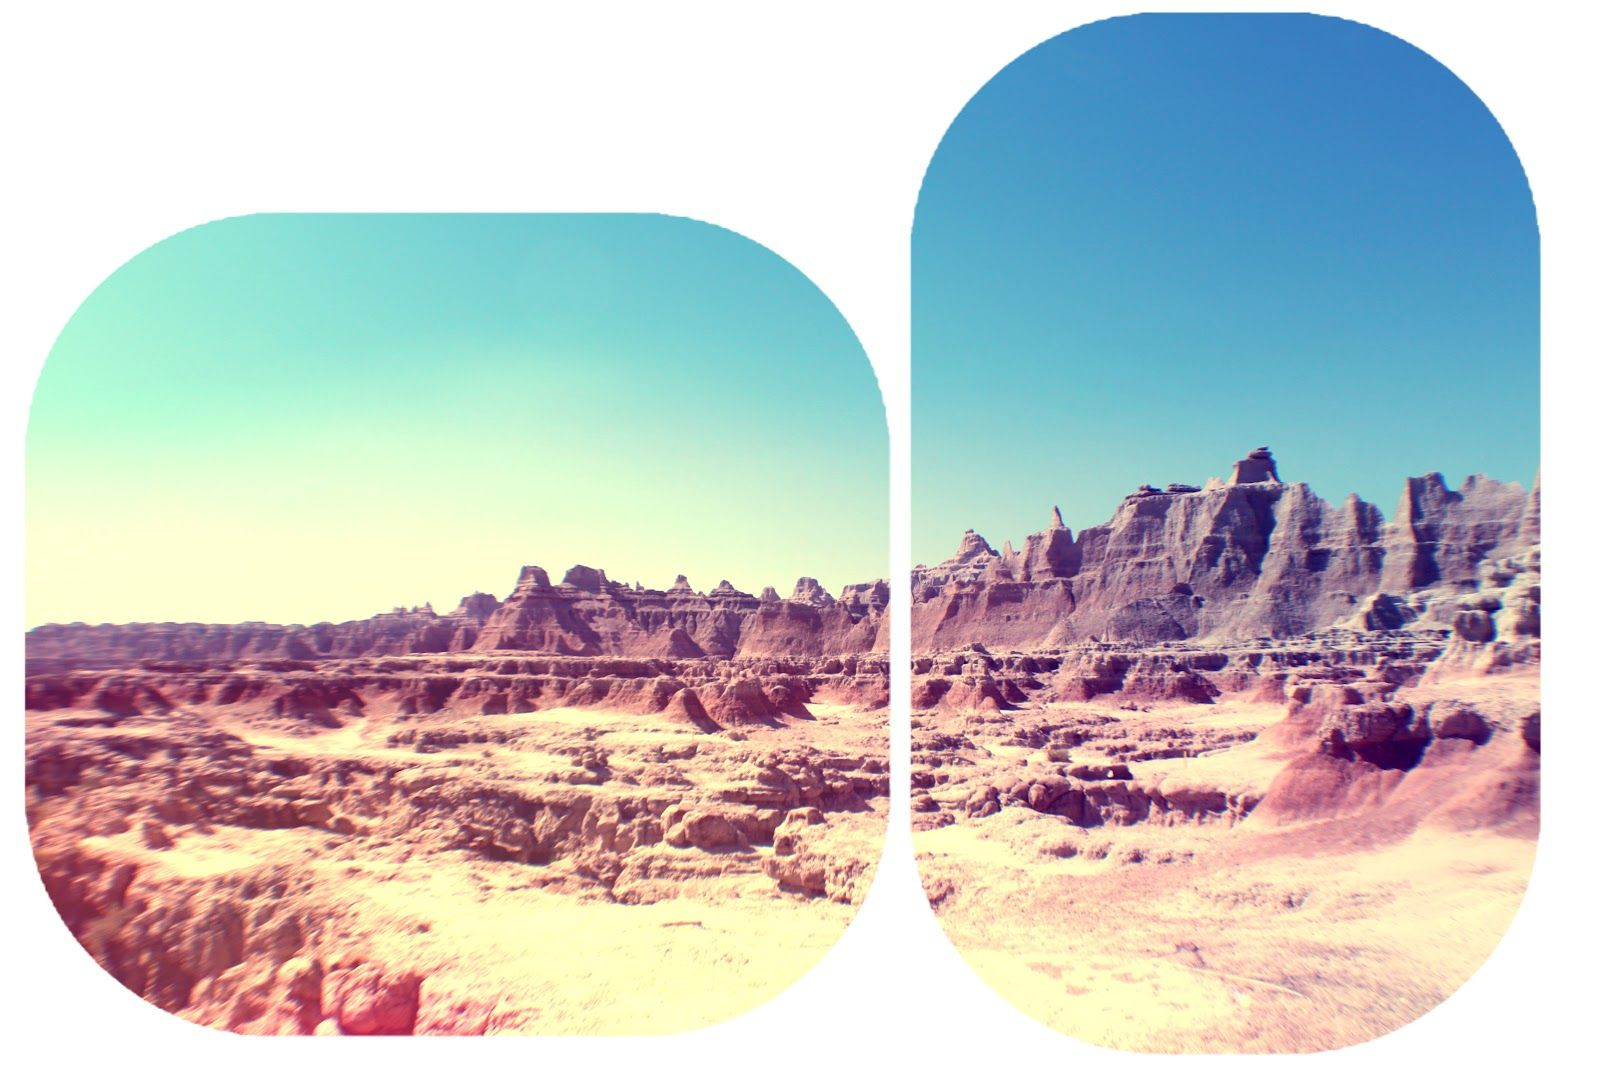 The Drifting Deltiologist, my recent trip to the Badlands